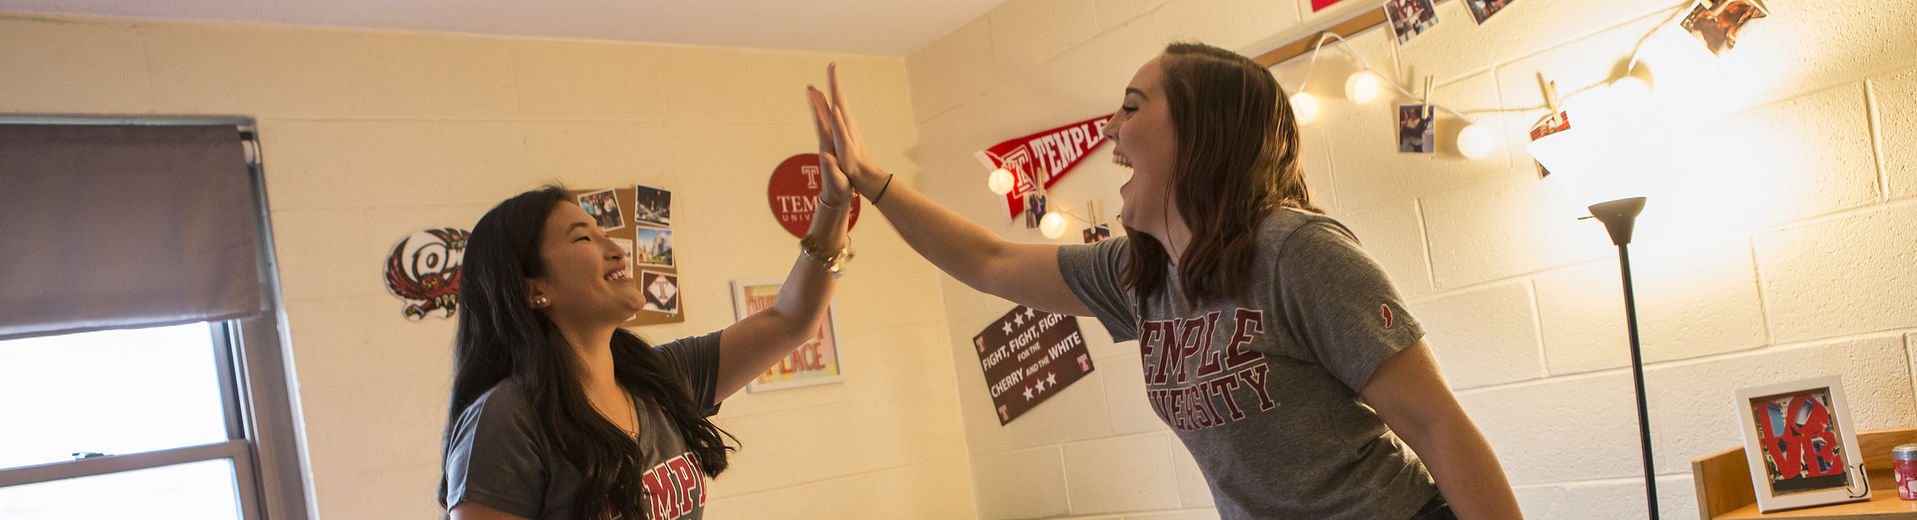 Two female students high-fiving in their on-campus residence hall